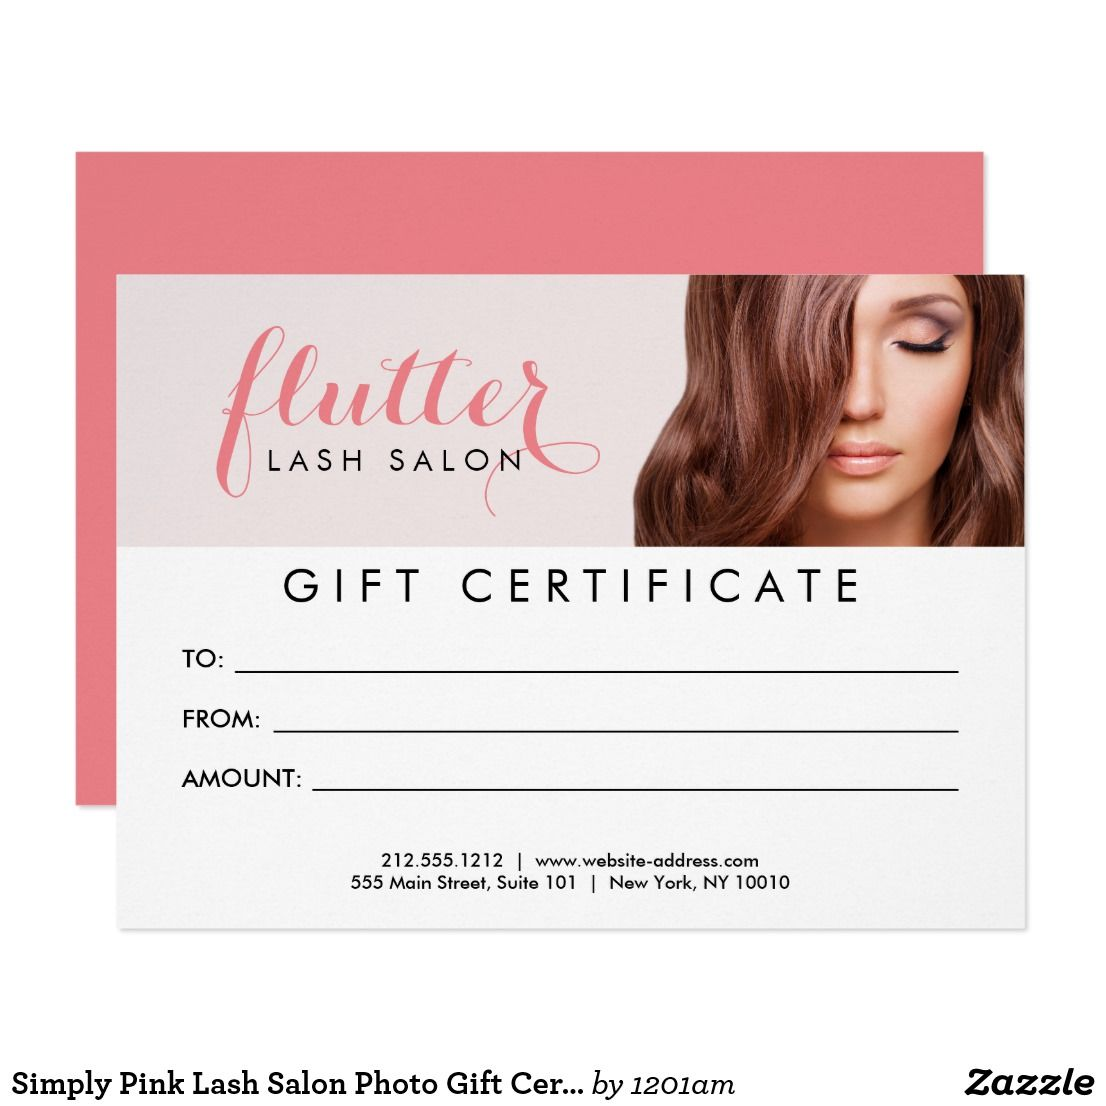 Simply Pink Lash Salon Photo Gift Certificate Card Business